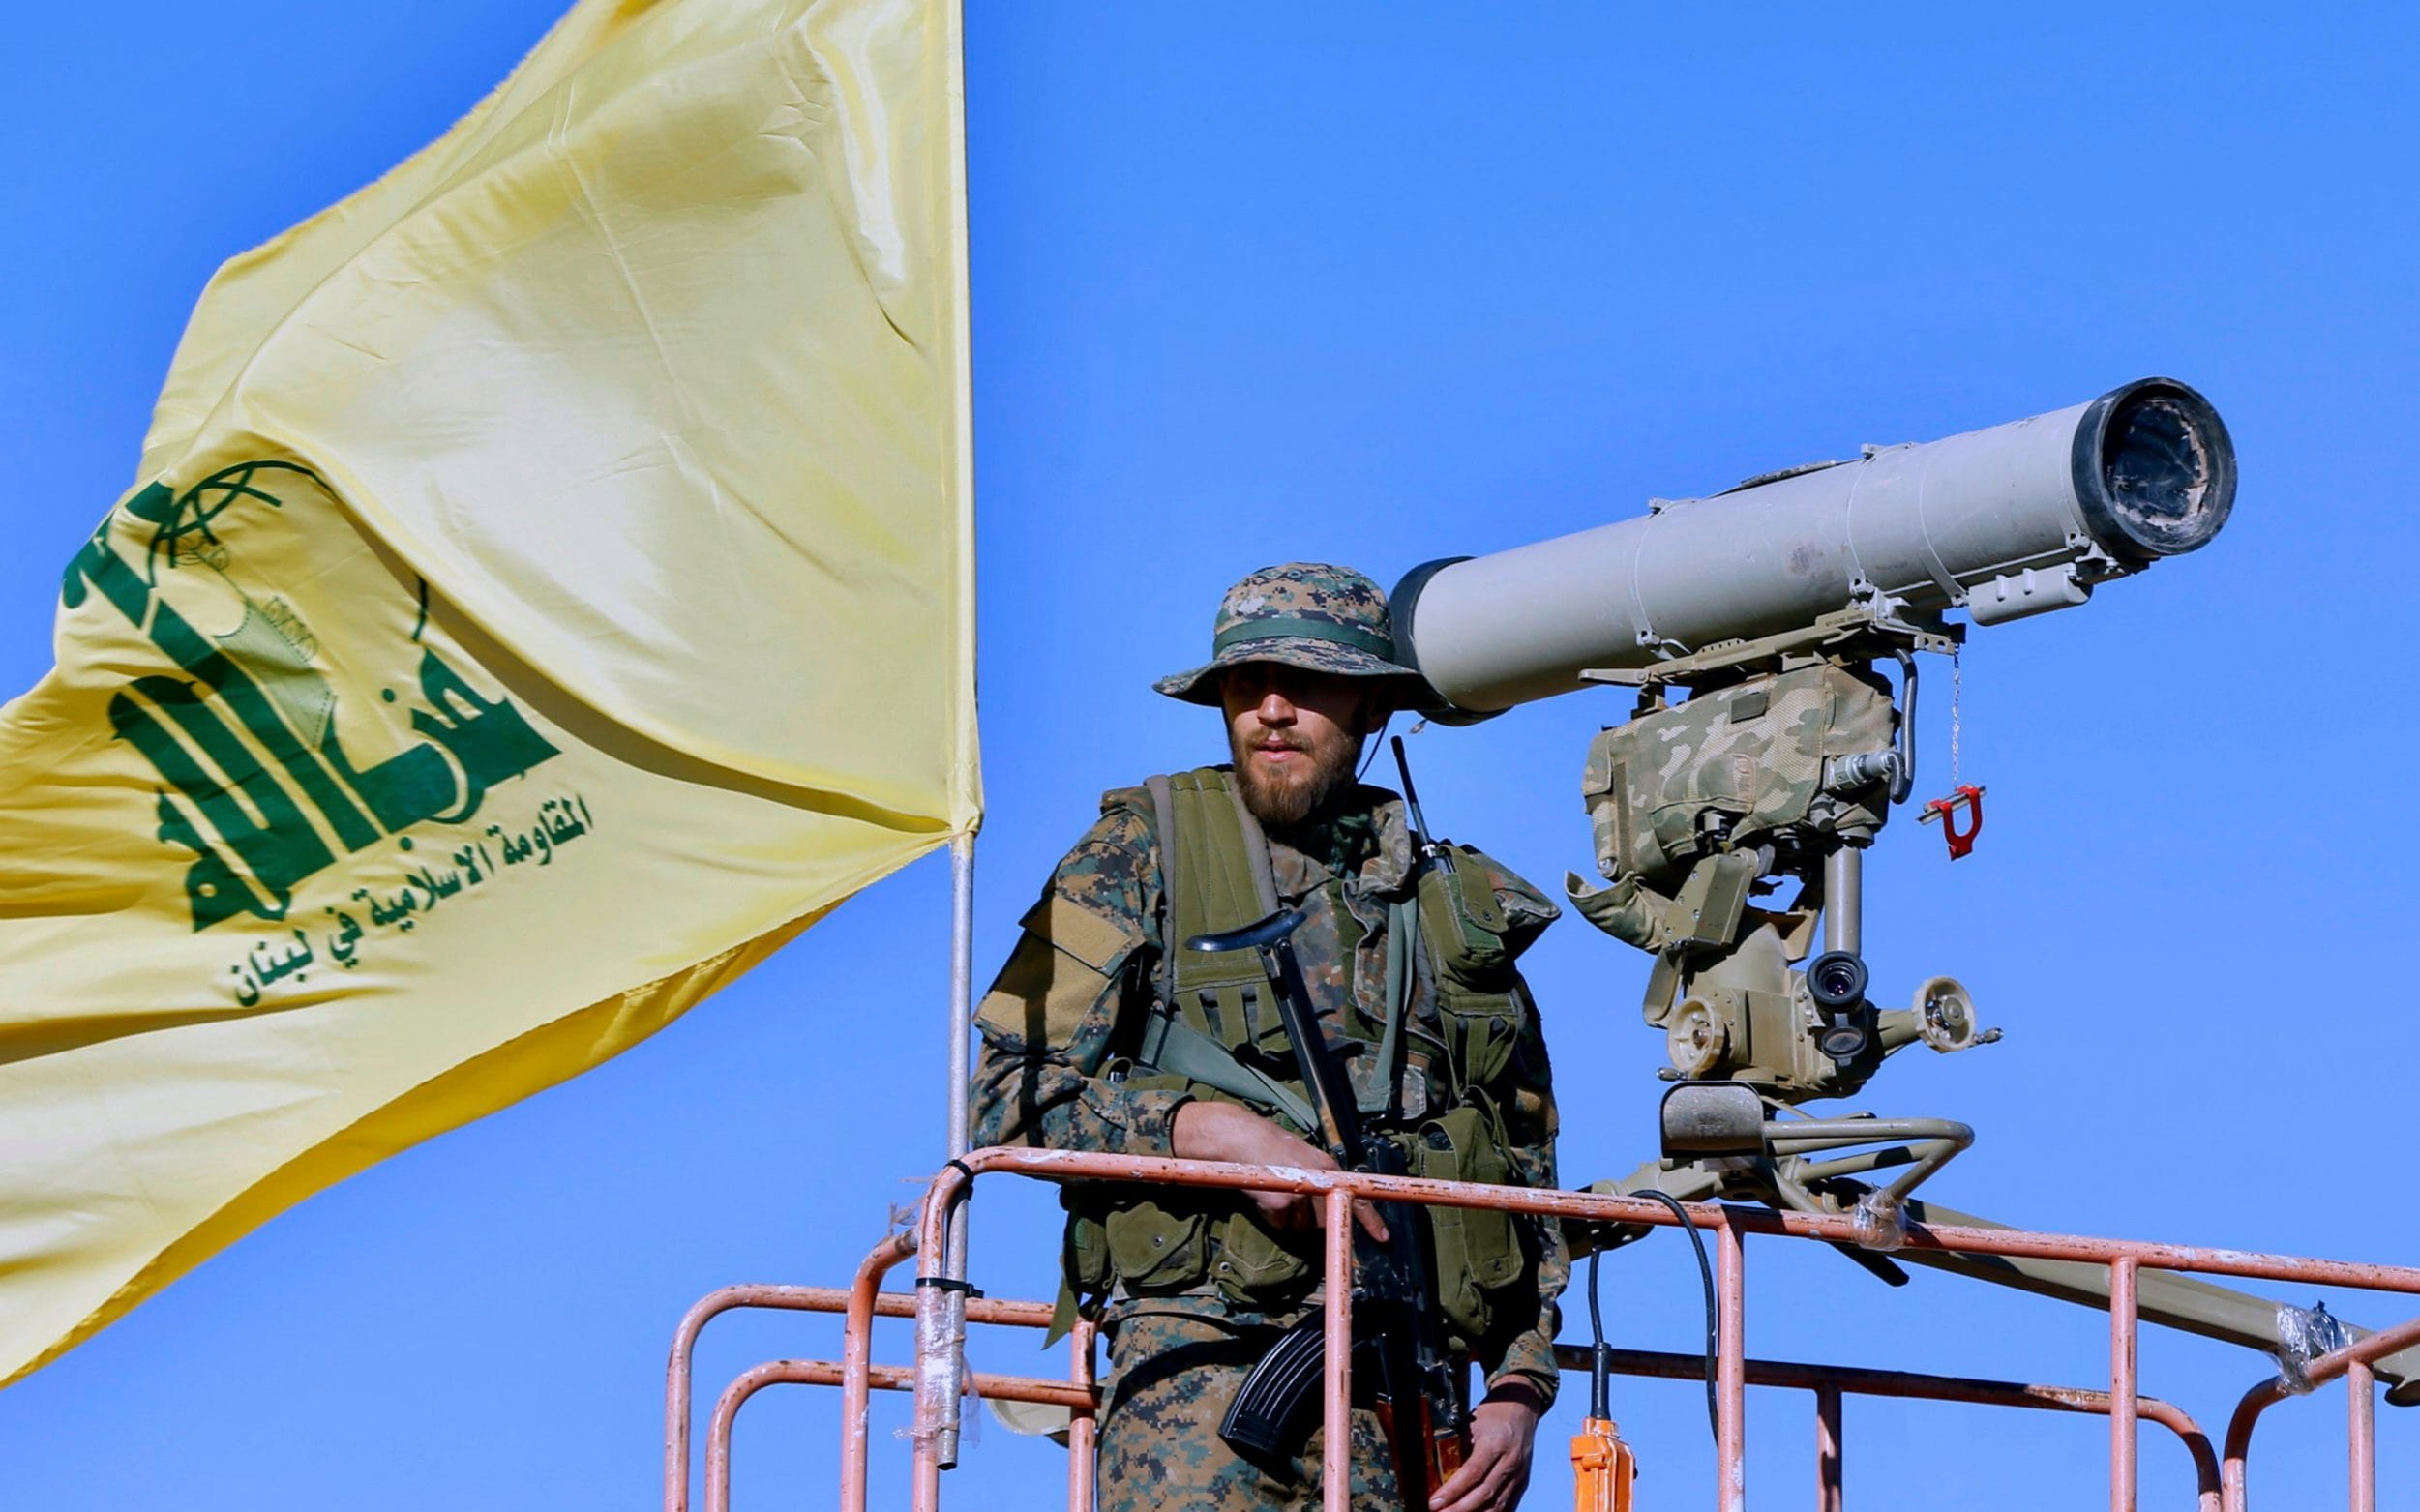 Hizbollah smuggling ammonium nitrate to Europe for attacks says US counterterrorism official